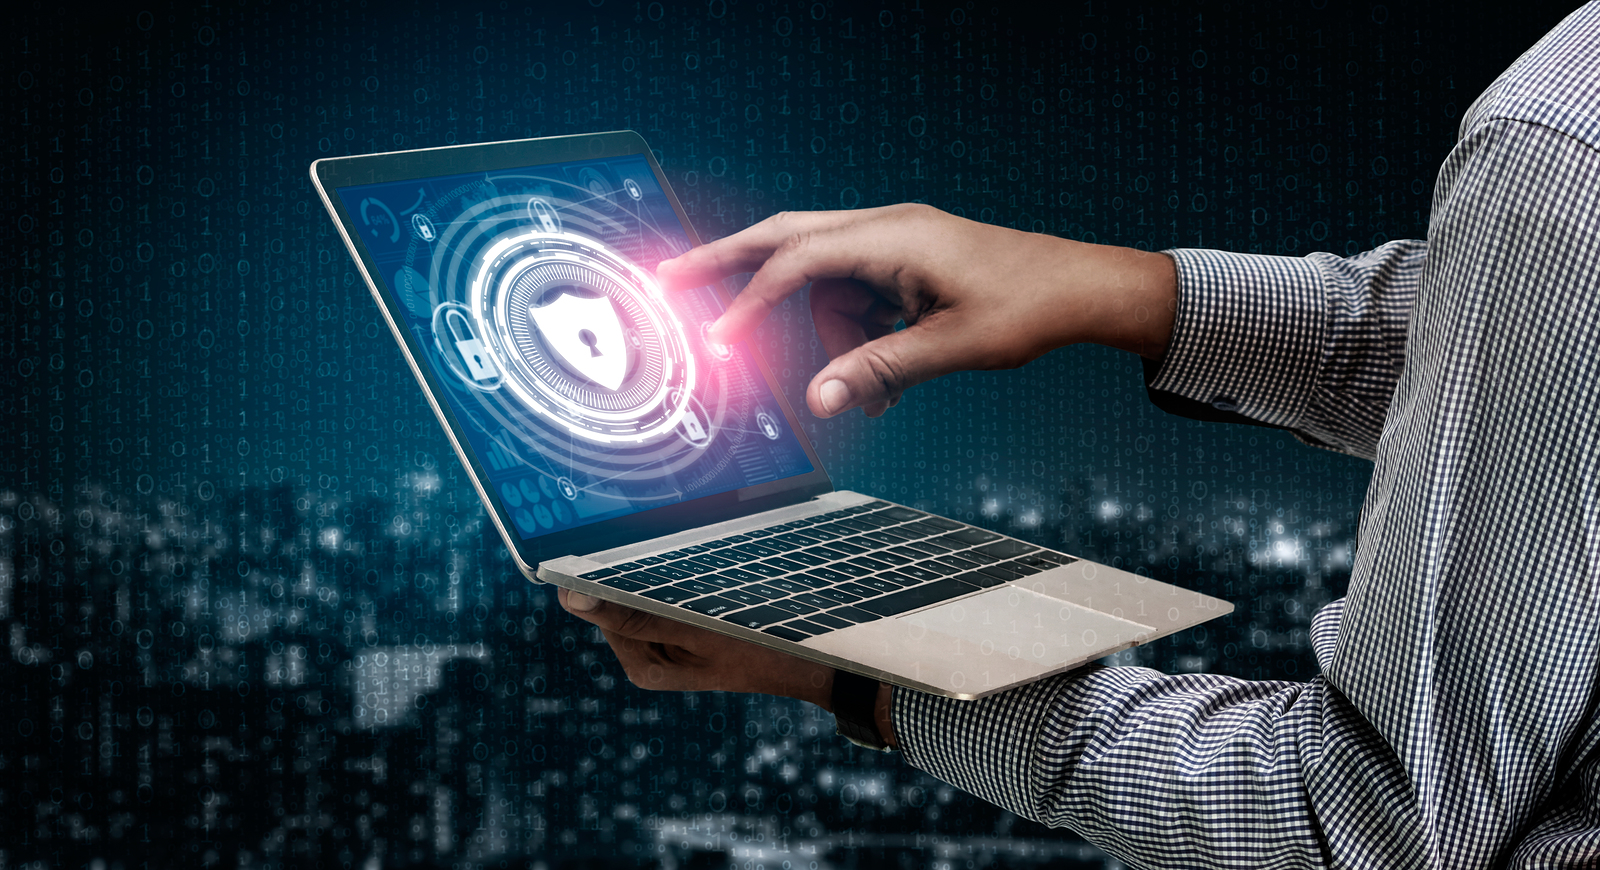 Top 3 Cyber Security Threats That Businesses Face